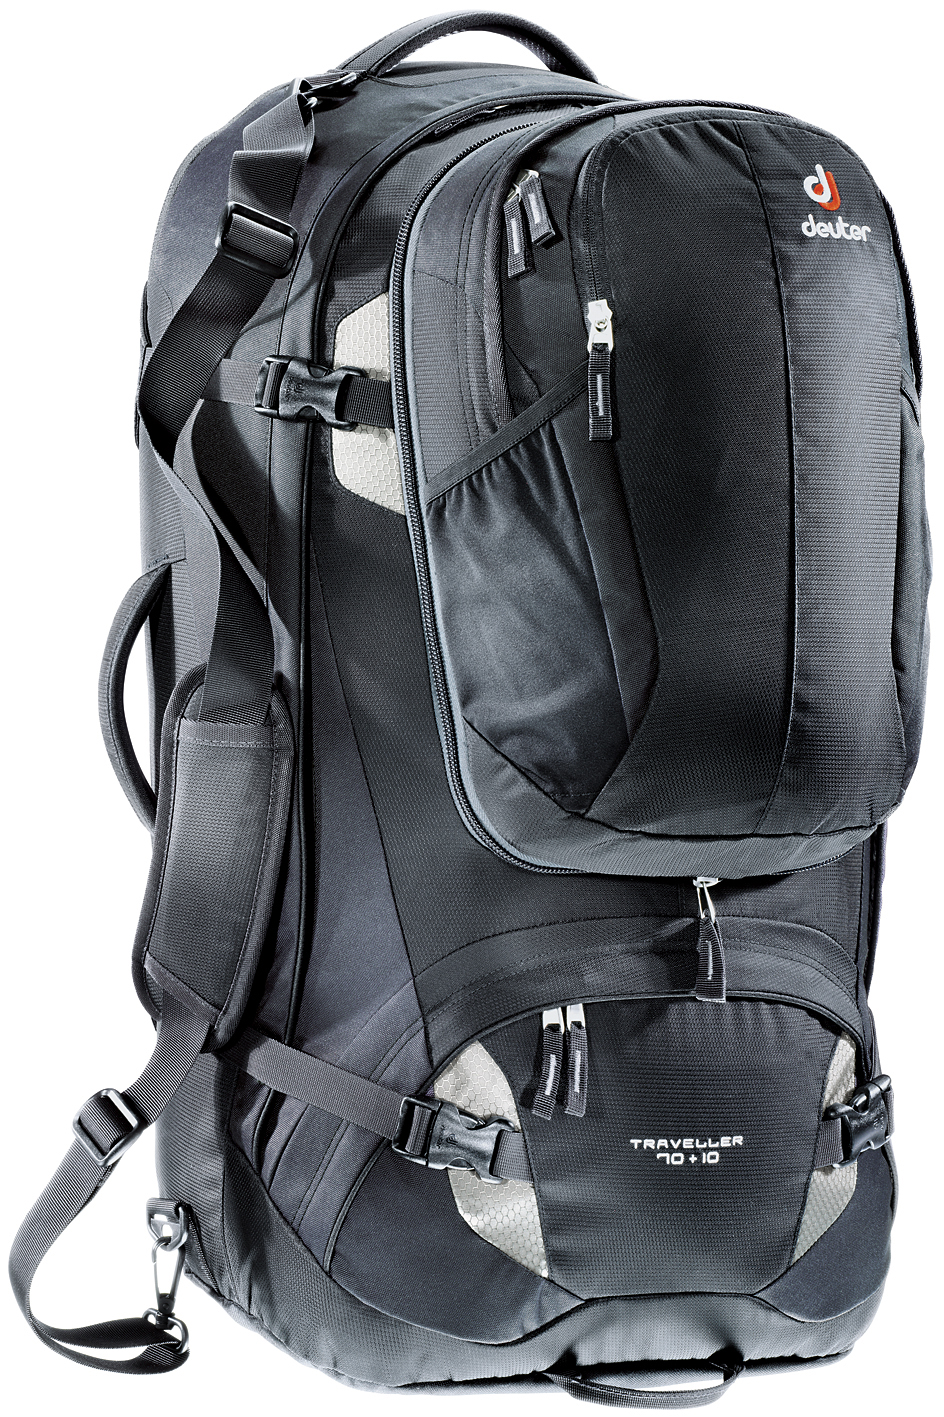 cee57c9c764 Deuter All products | MEC